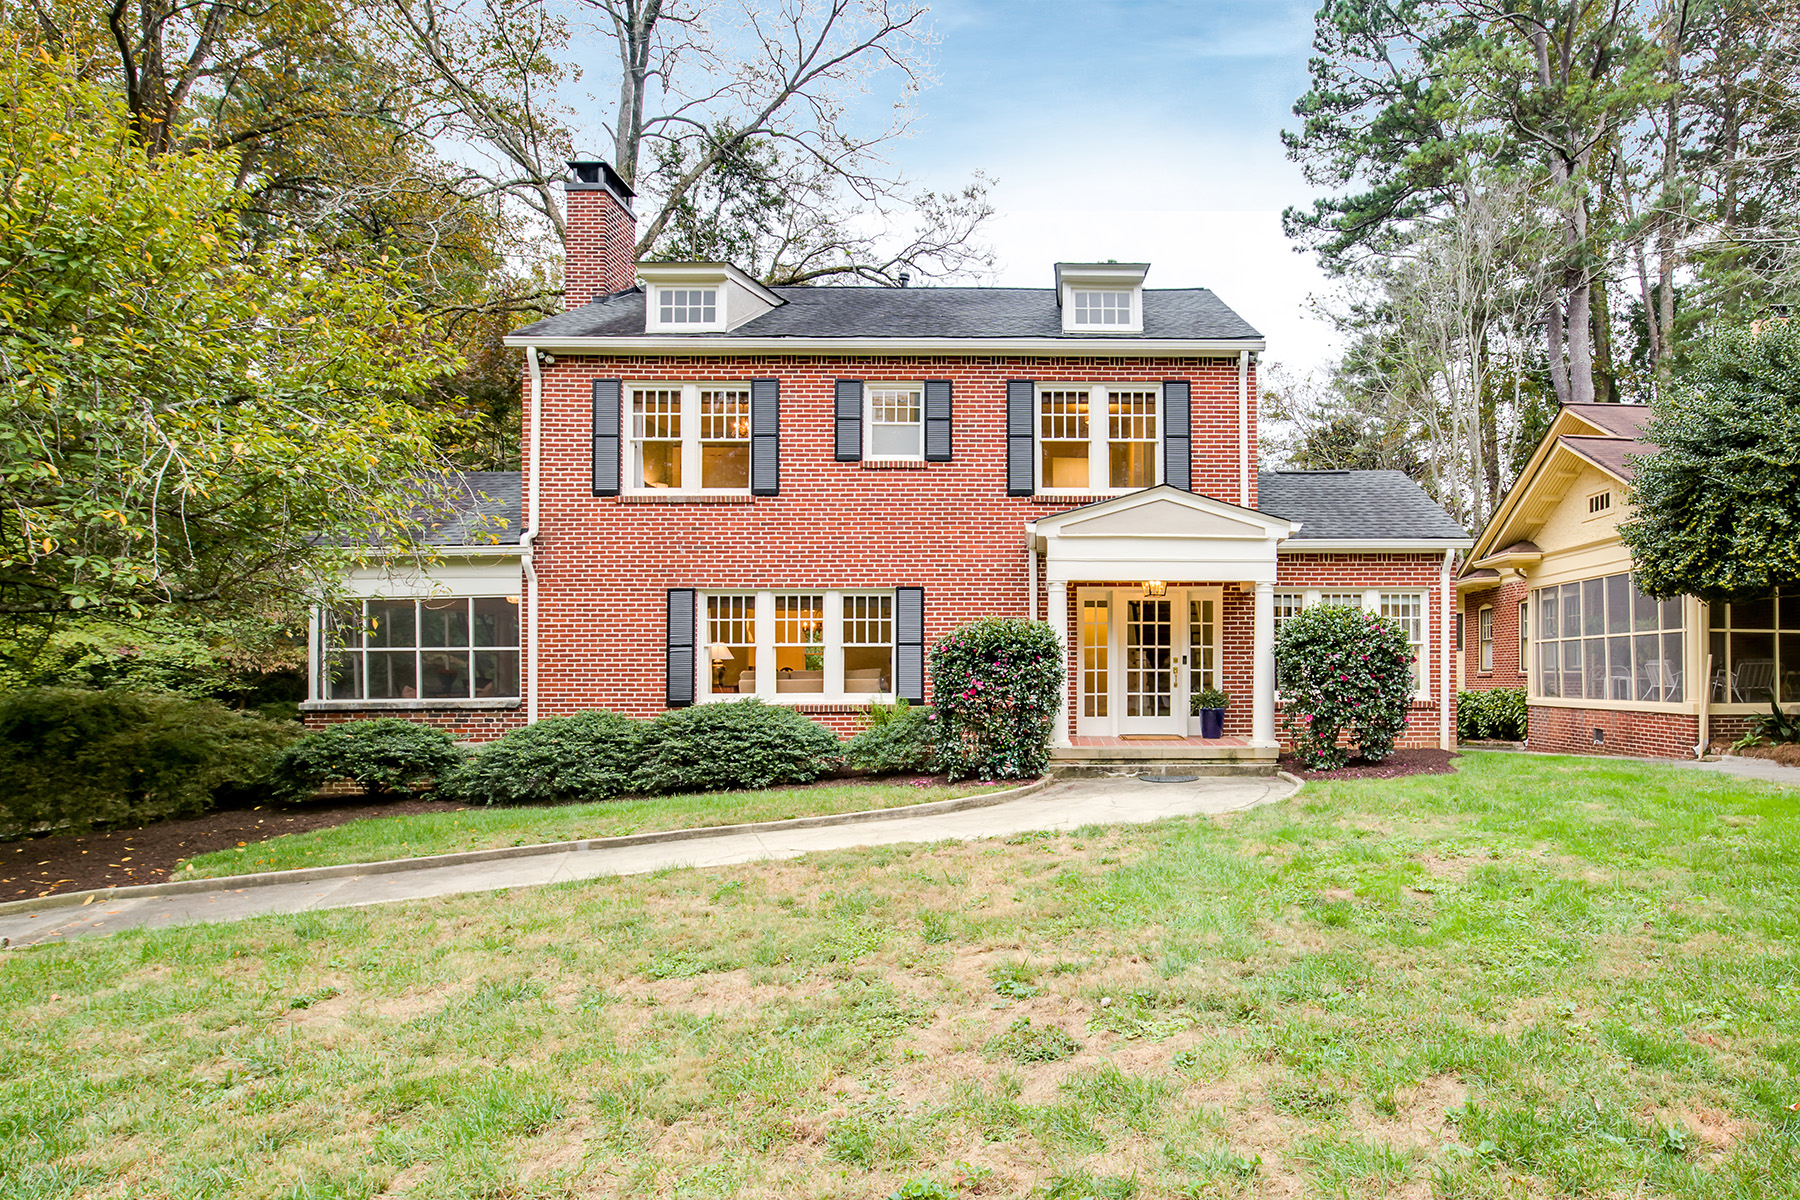 Single Family Home for Sale at The Quintessential Druid Hills Home on Highly Desirable Harvard Road 1401 Harvard Road NE Atlanta, Georgia 30306 United States